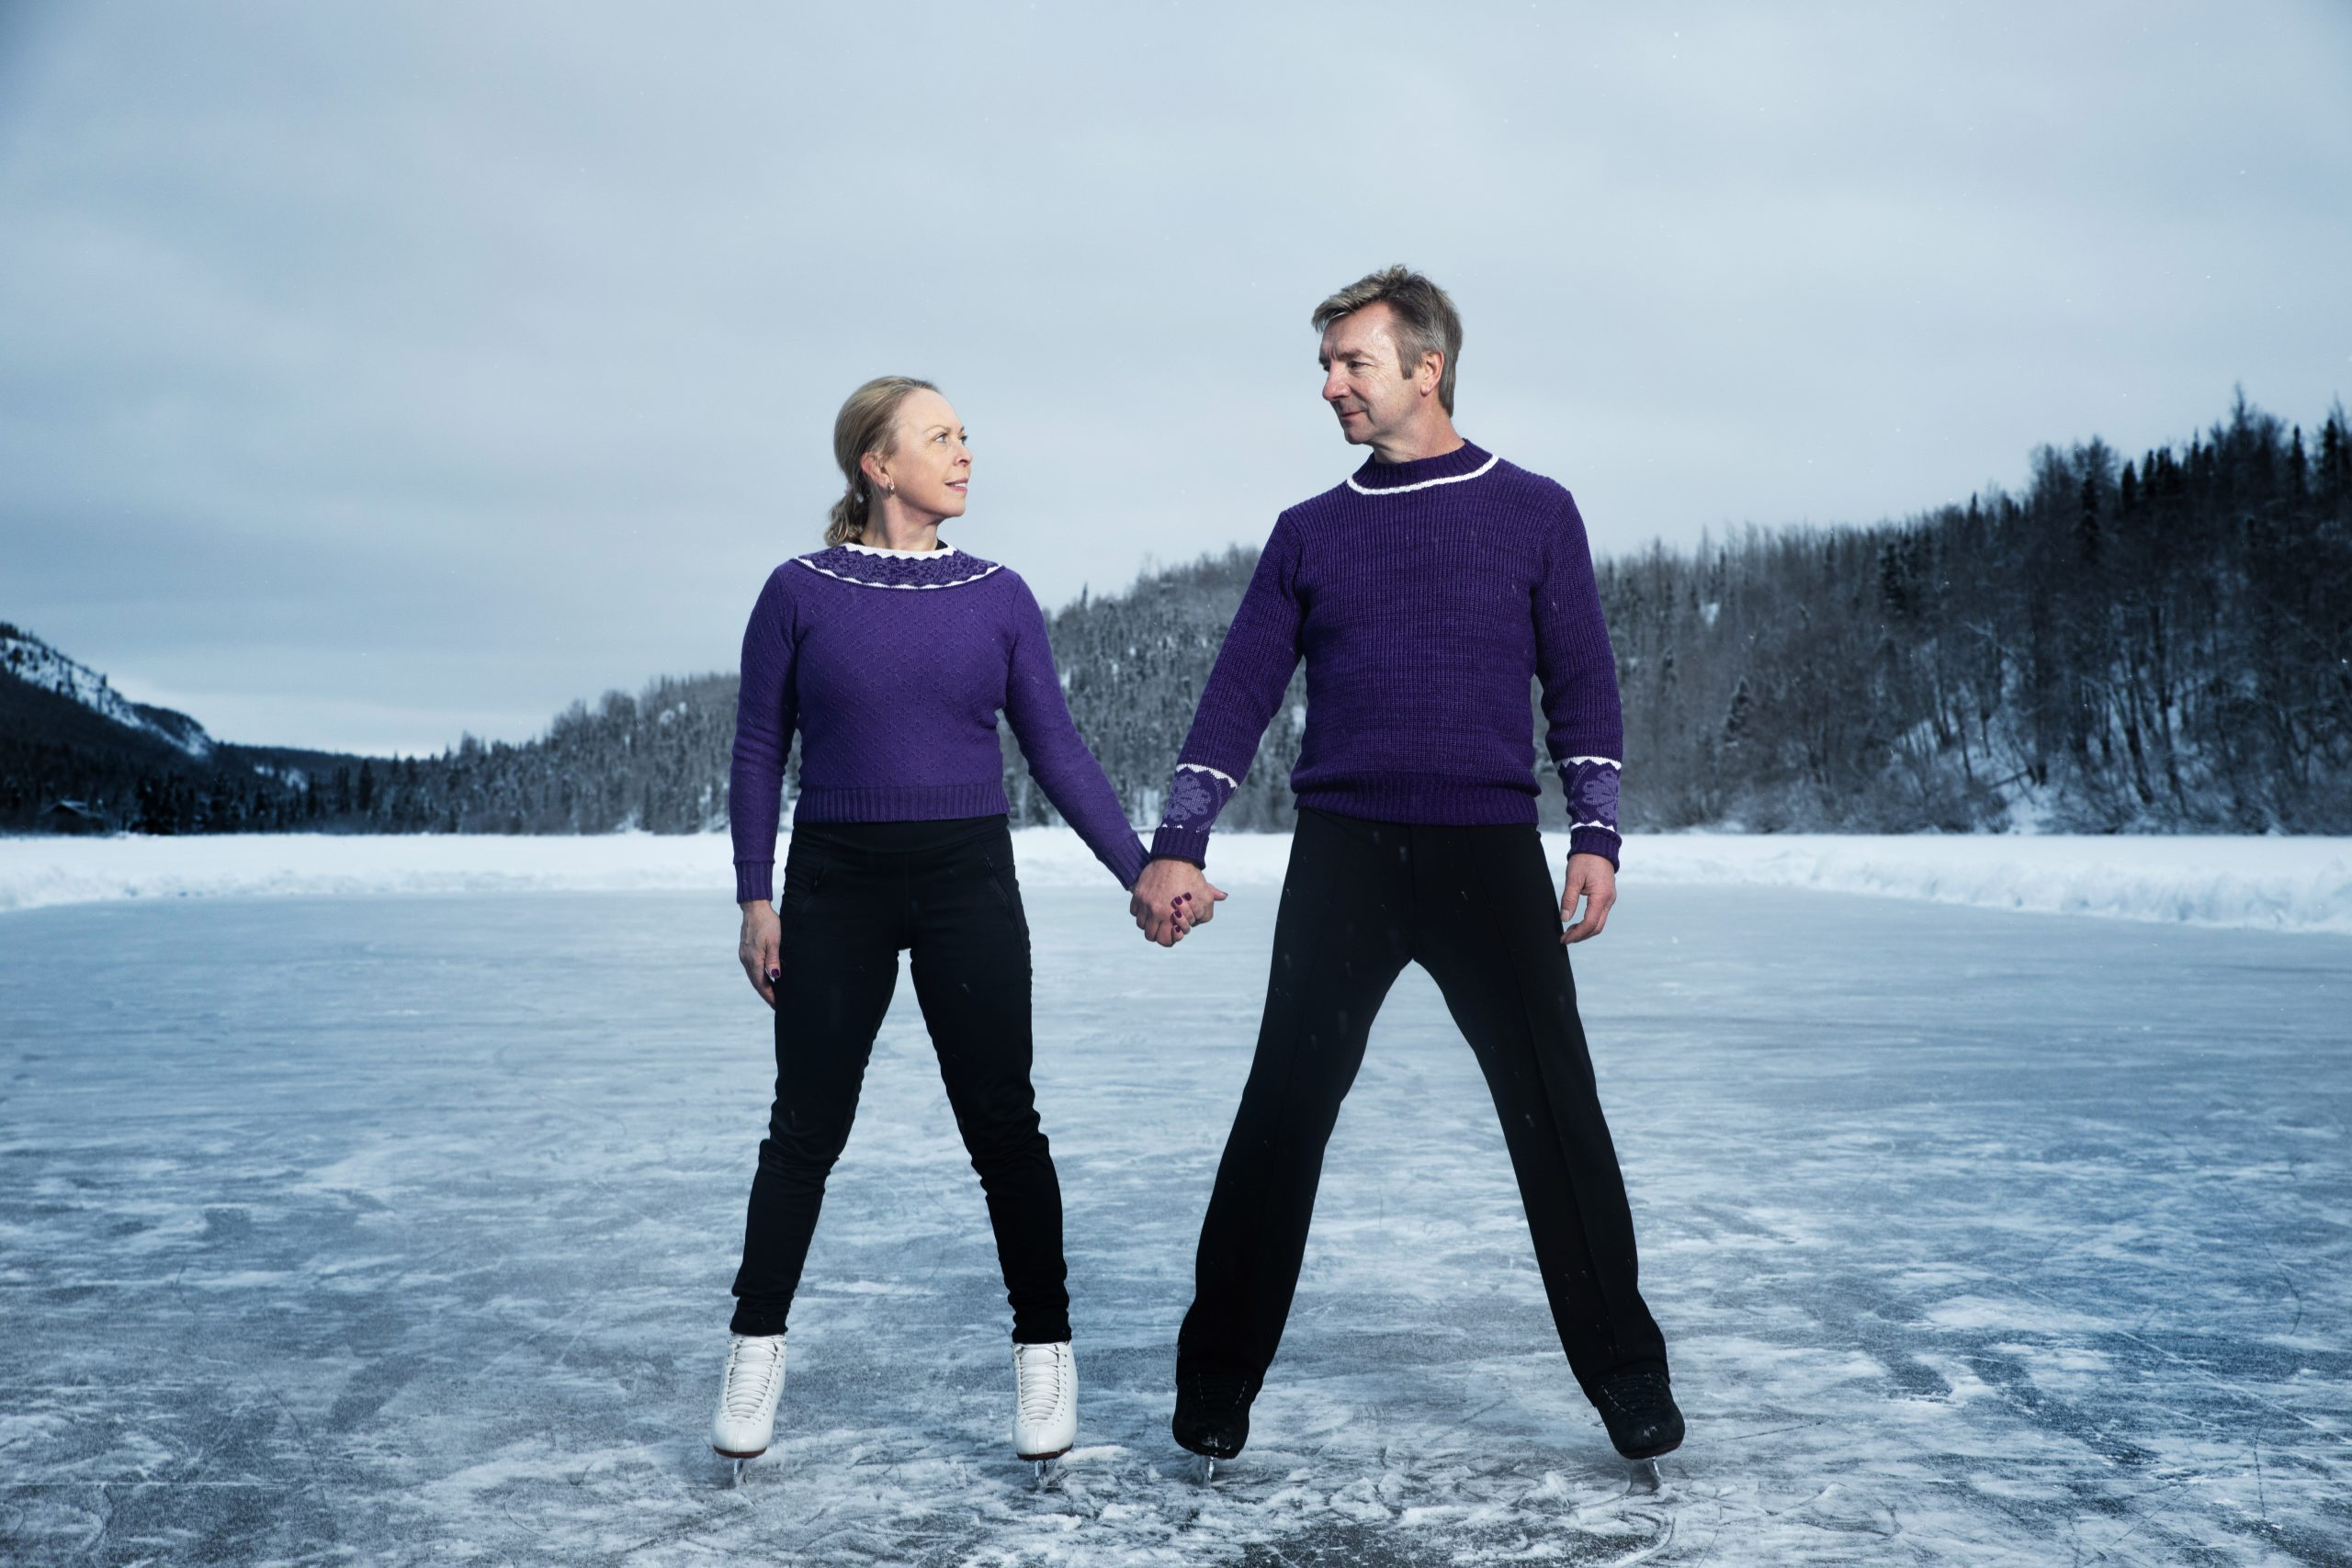 Dancing on thin ice